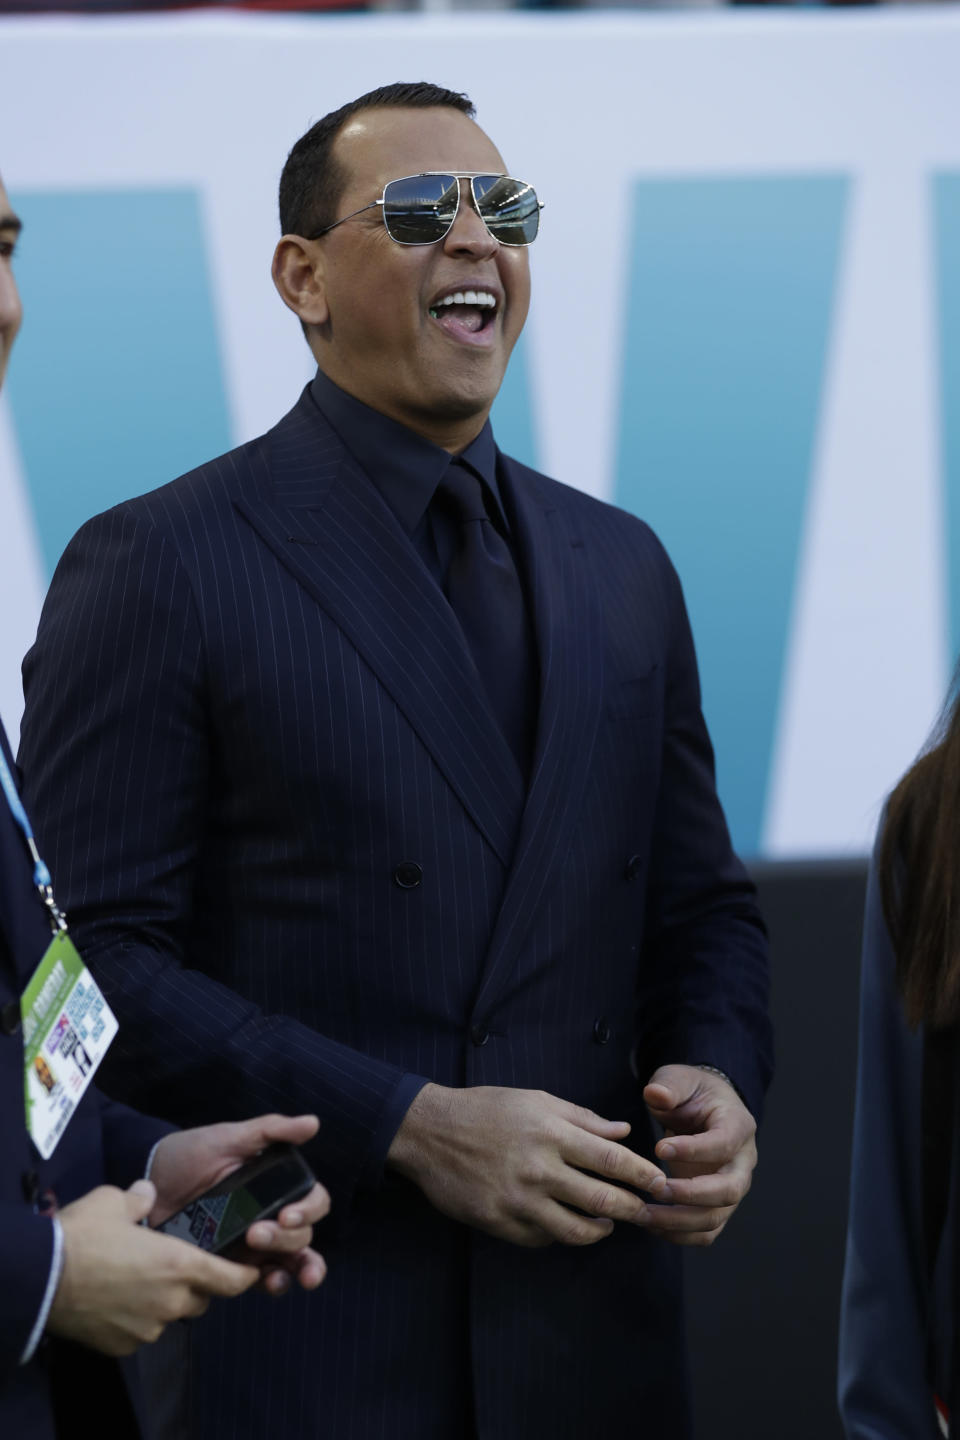 Former MLB player Alex Rodriguez watches teams warm up before the NFL Super Bowl 54 football game between the San Francisco 49ers and Kansas City Chiefs Sunday, Feb. 2, 2020, in Miami Gardens, Fla. (AP Photo/Wilfredo Lee)